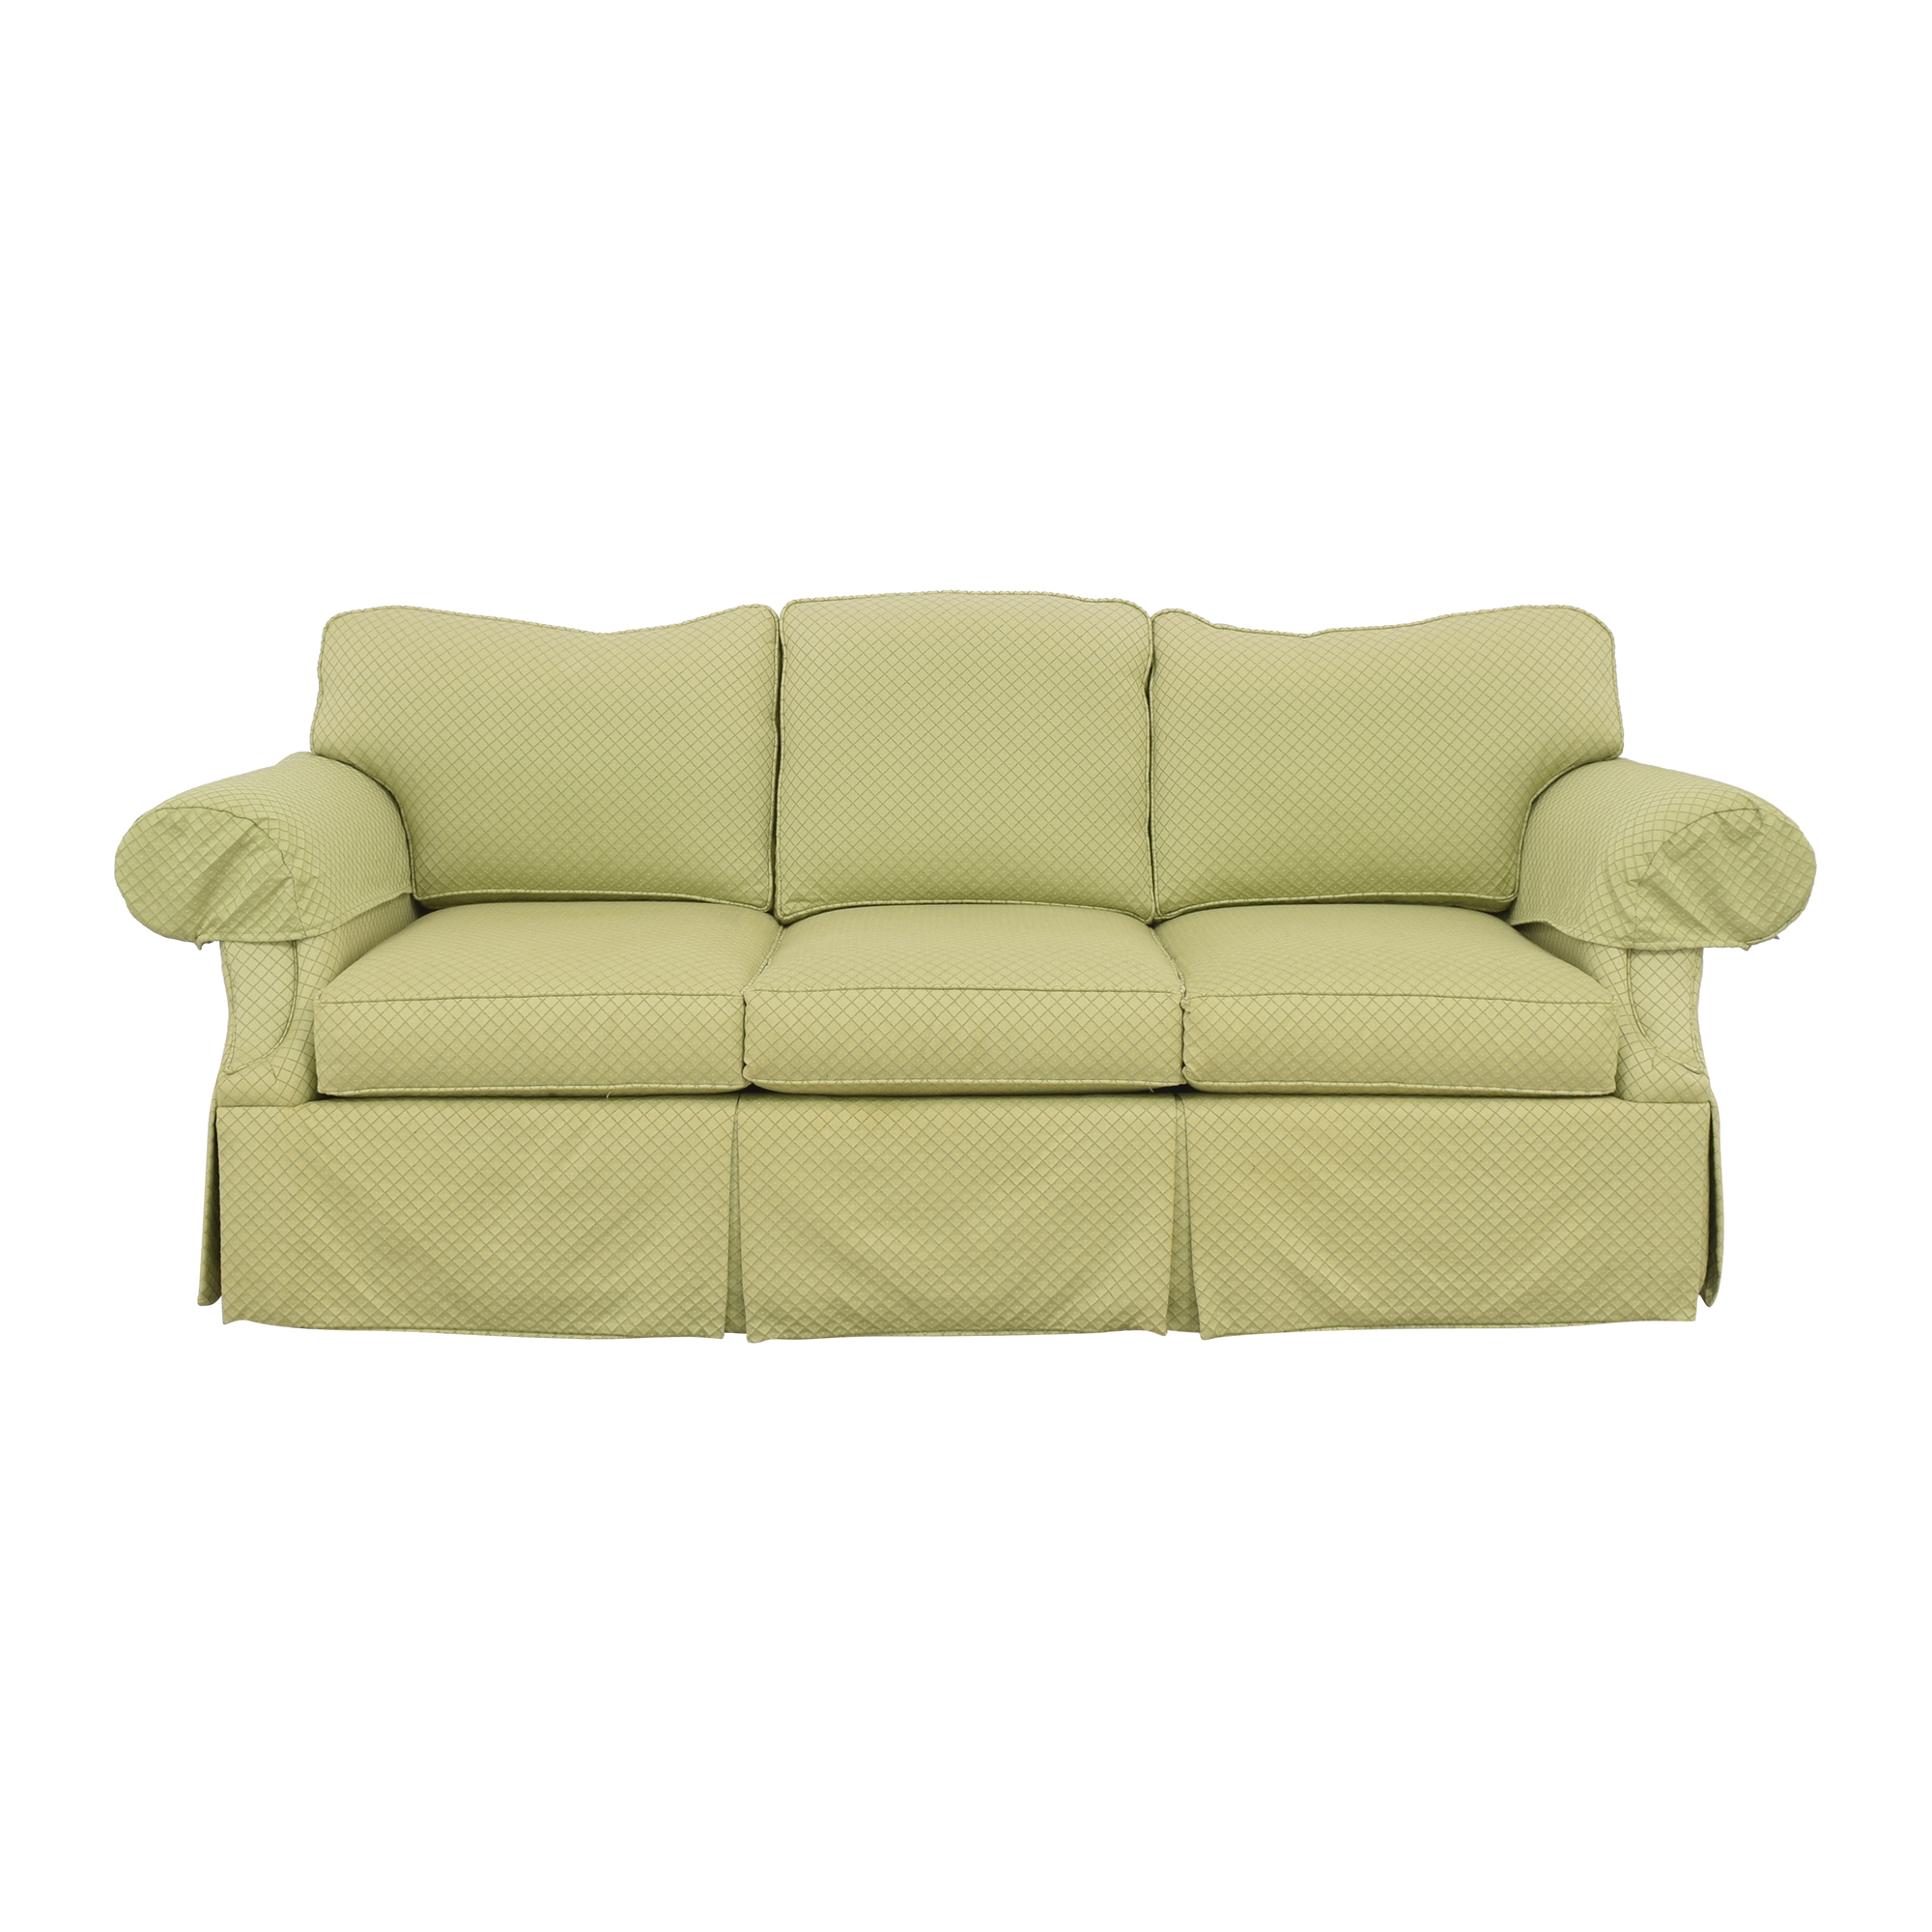 Ethan Allen Ethan Allen Marris Three Cushion Sofa ma